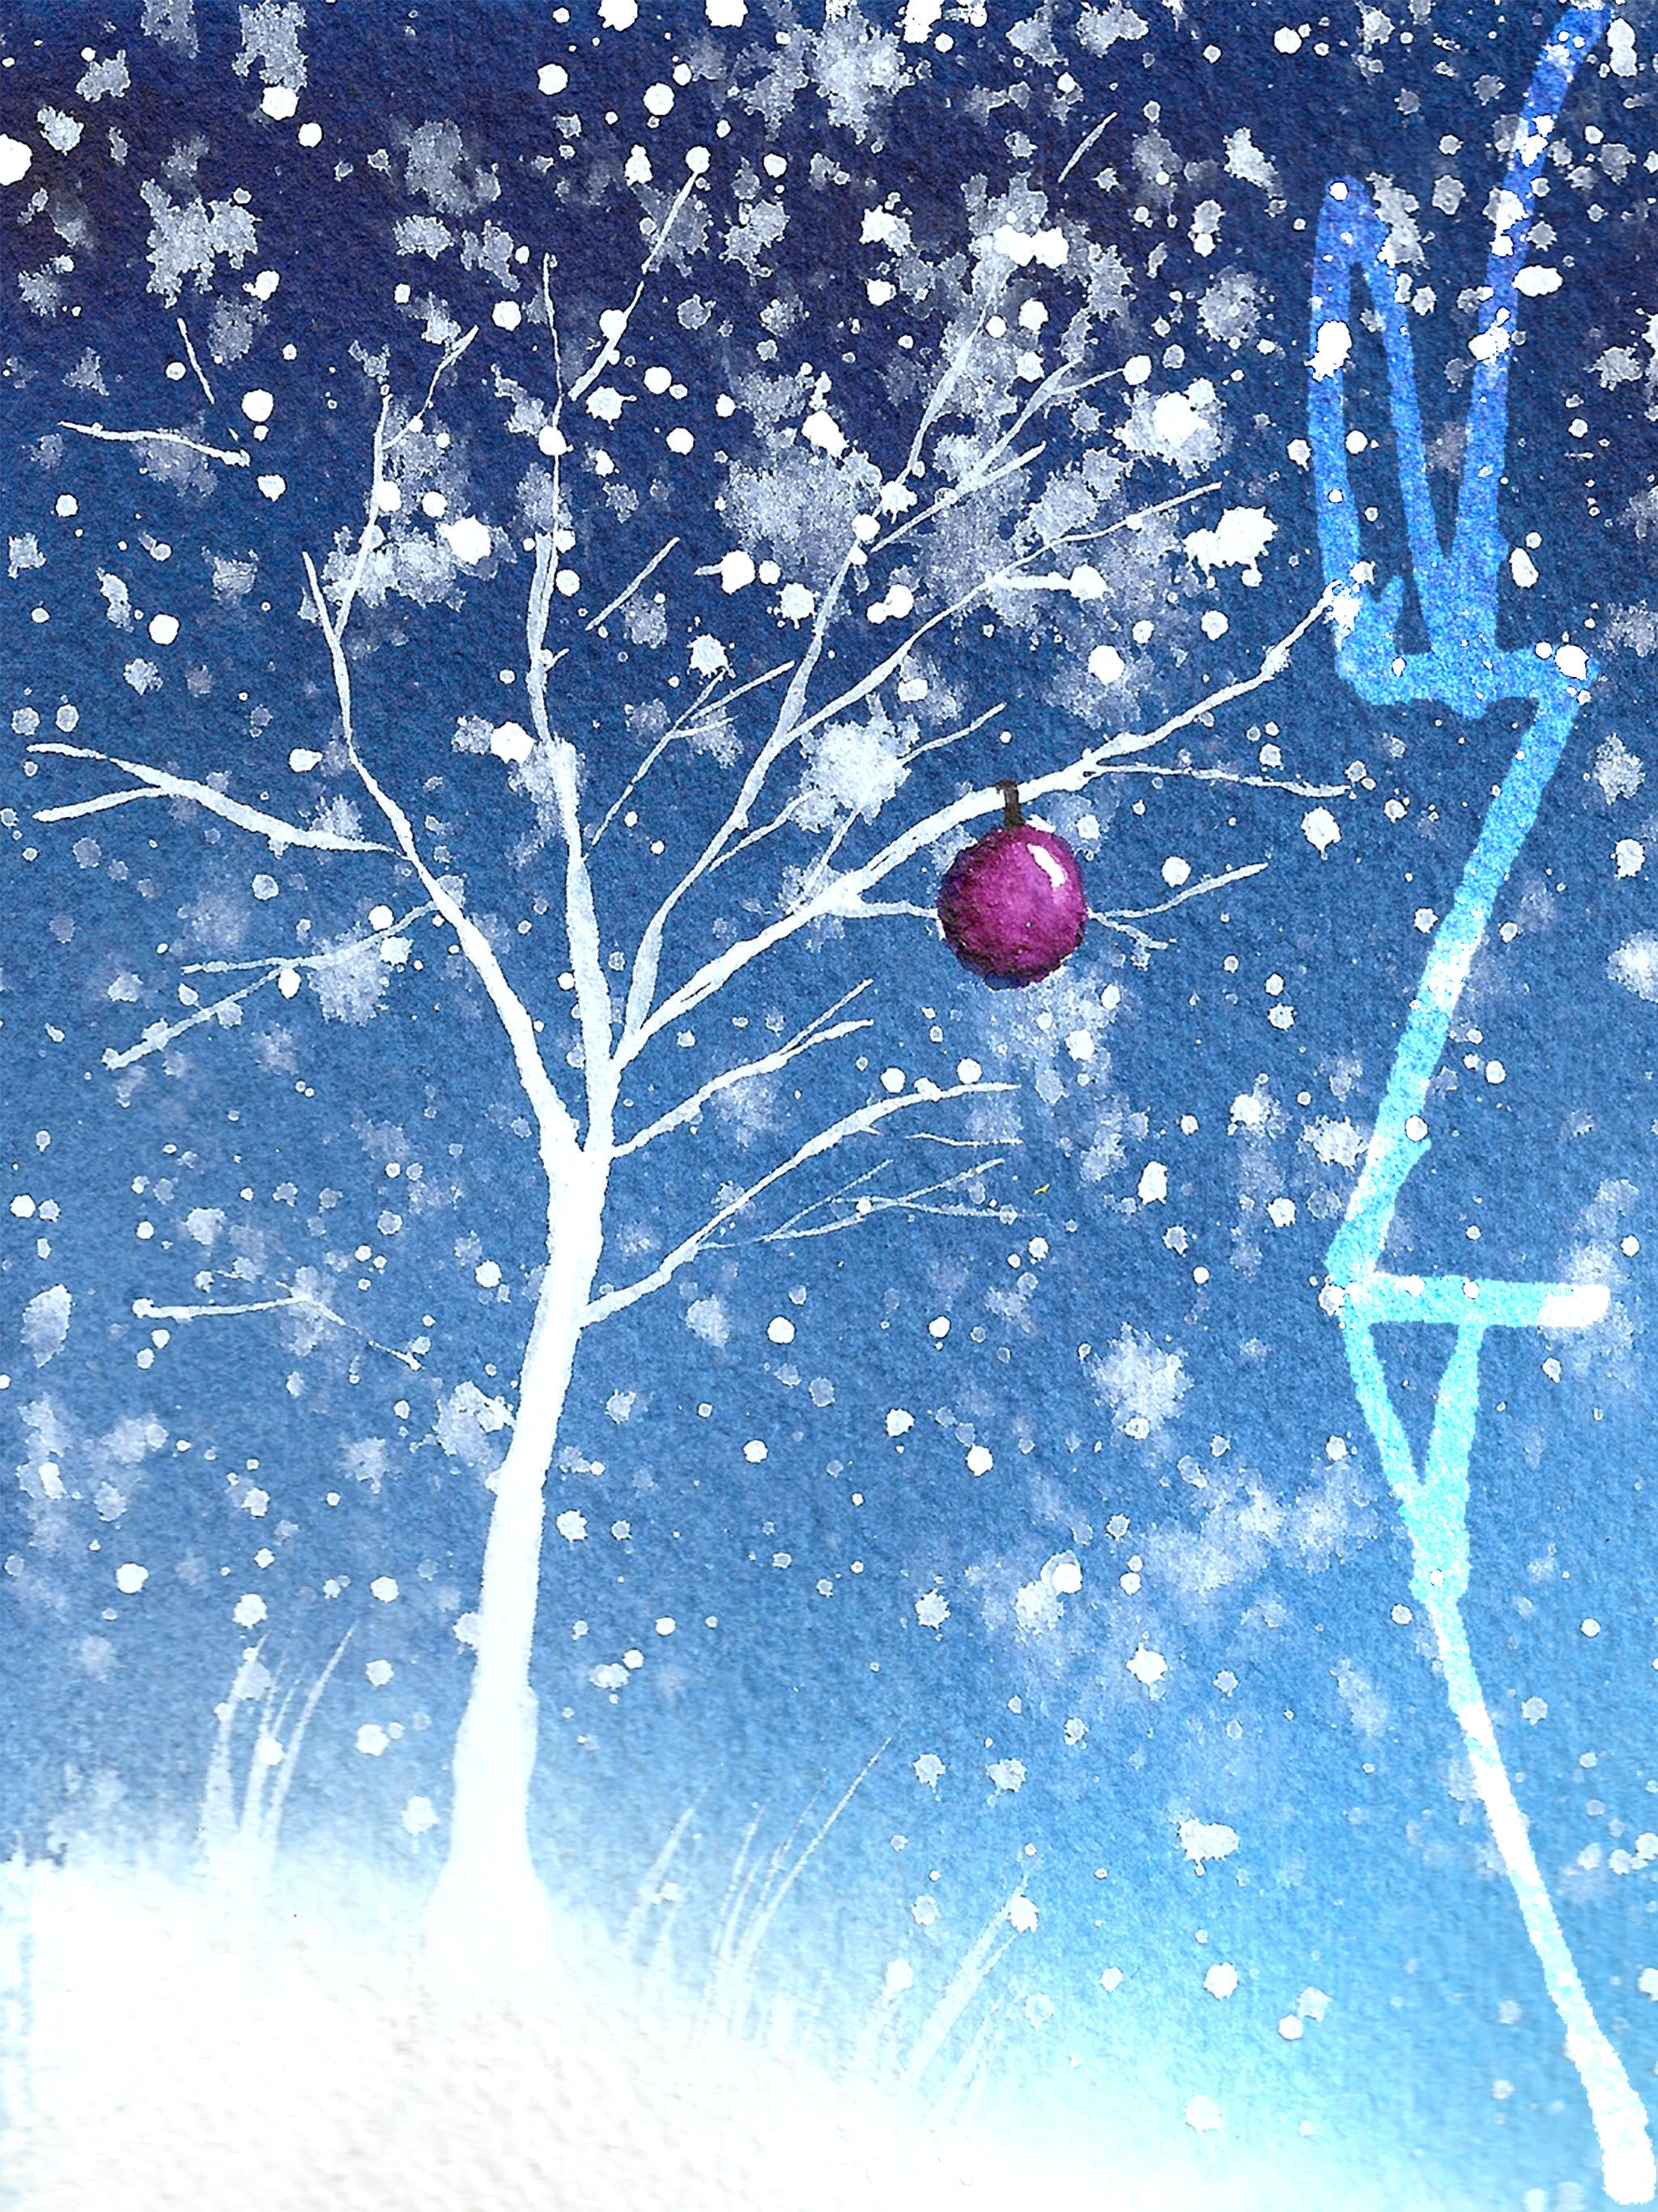 Free Holiday Wallpapers for your mobile device!